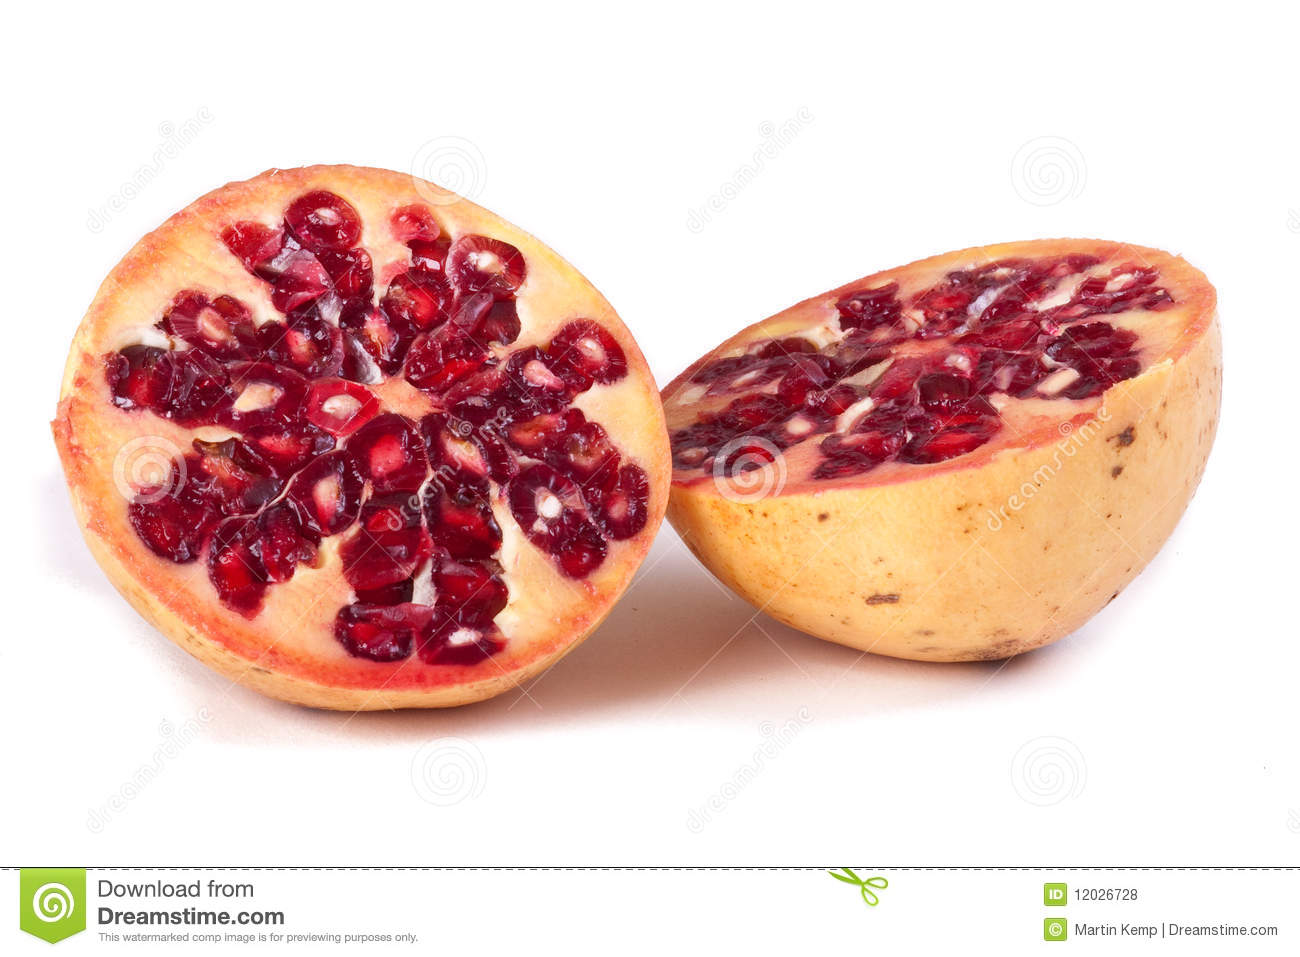 how to cut up a pomegranate